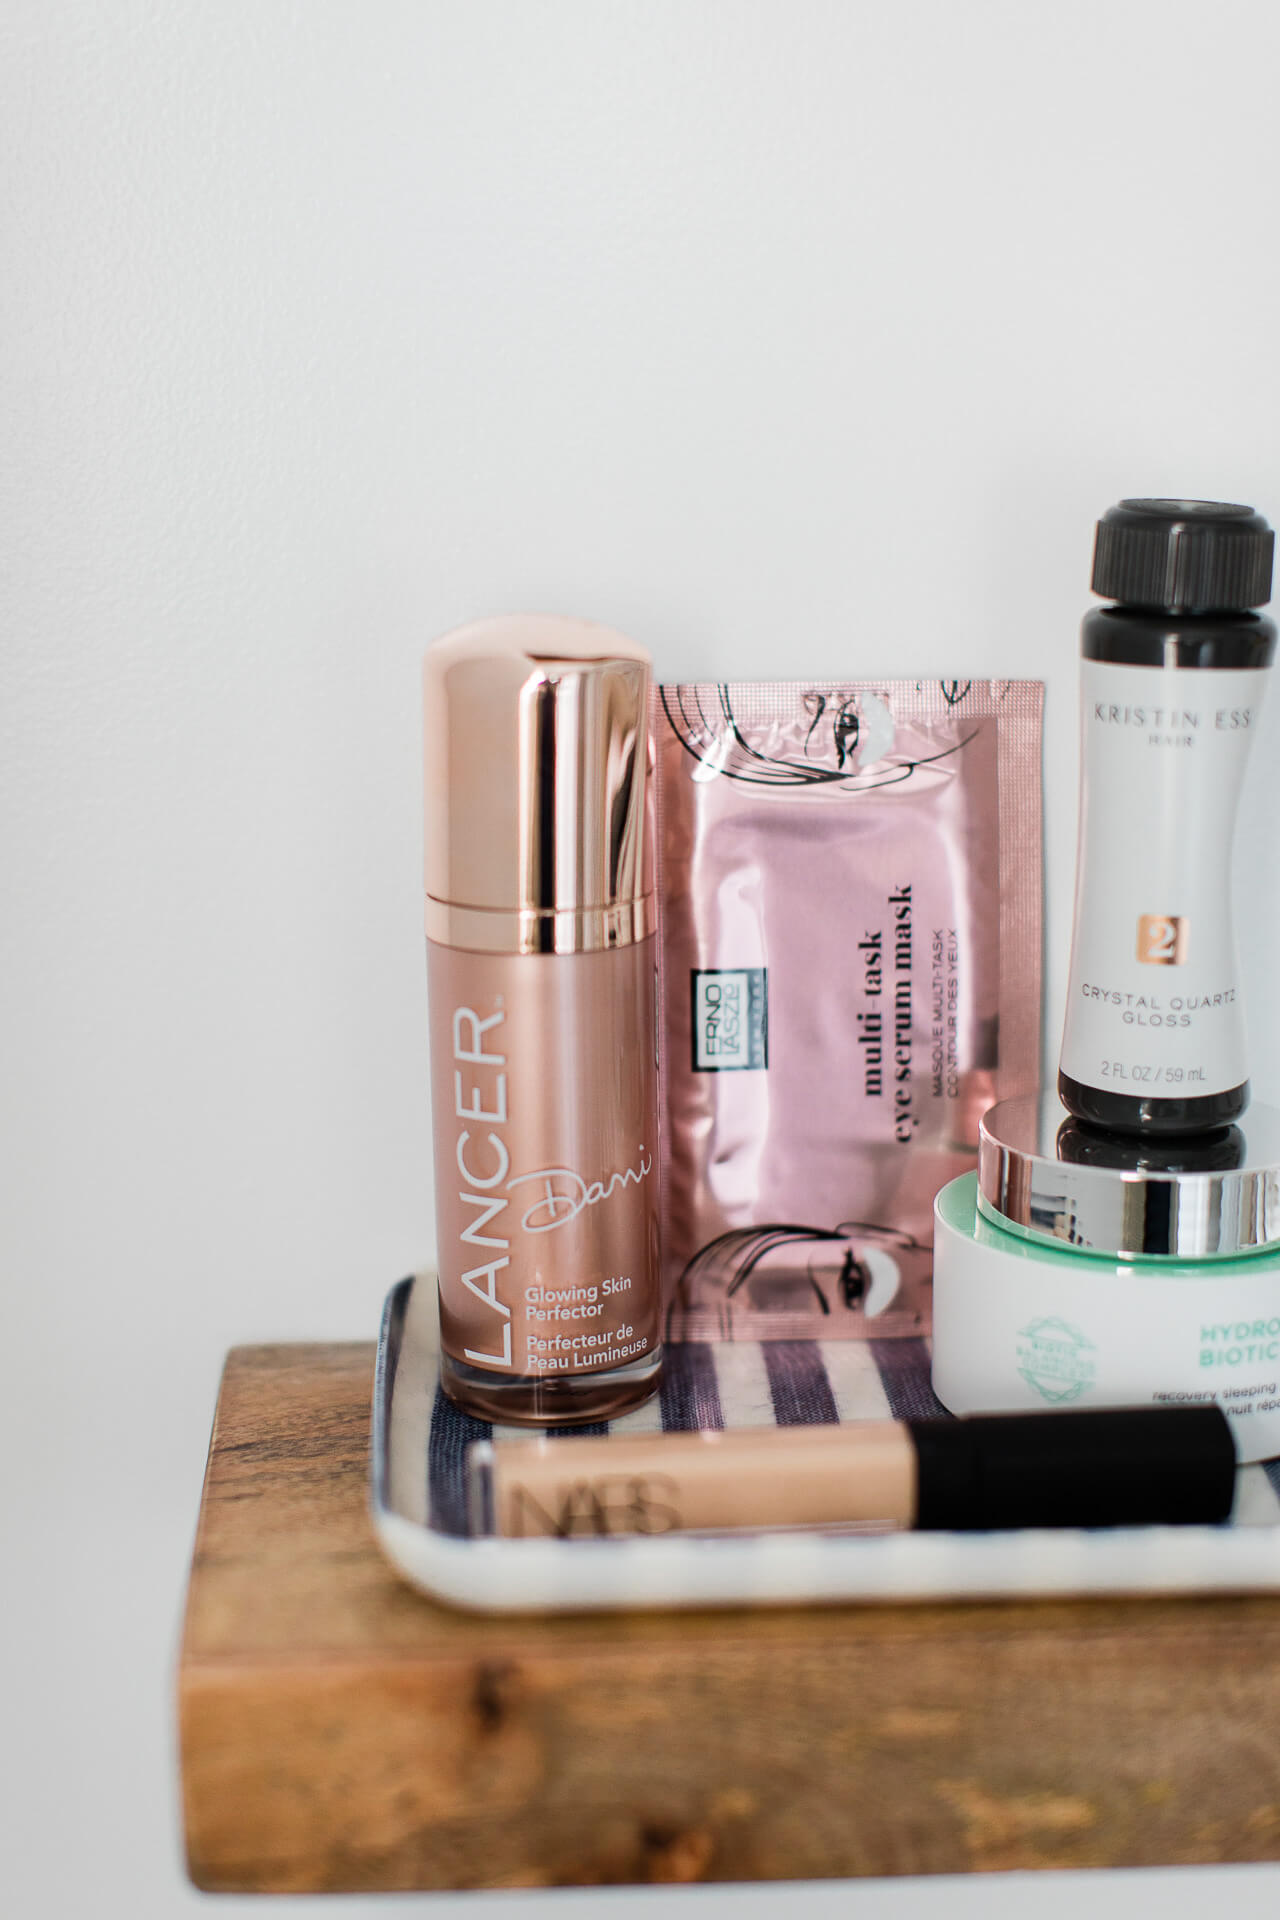 These skincare products give a major glow! - M Loves M @marmar